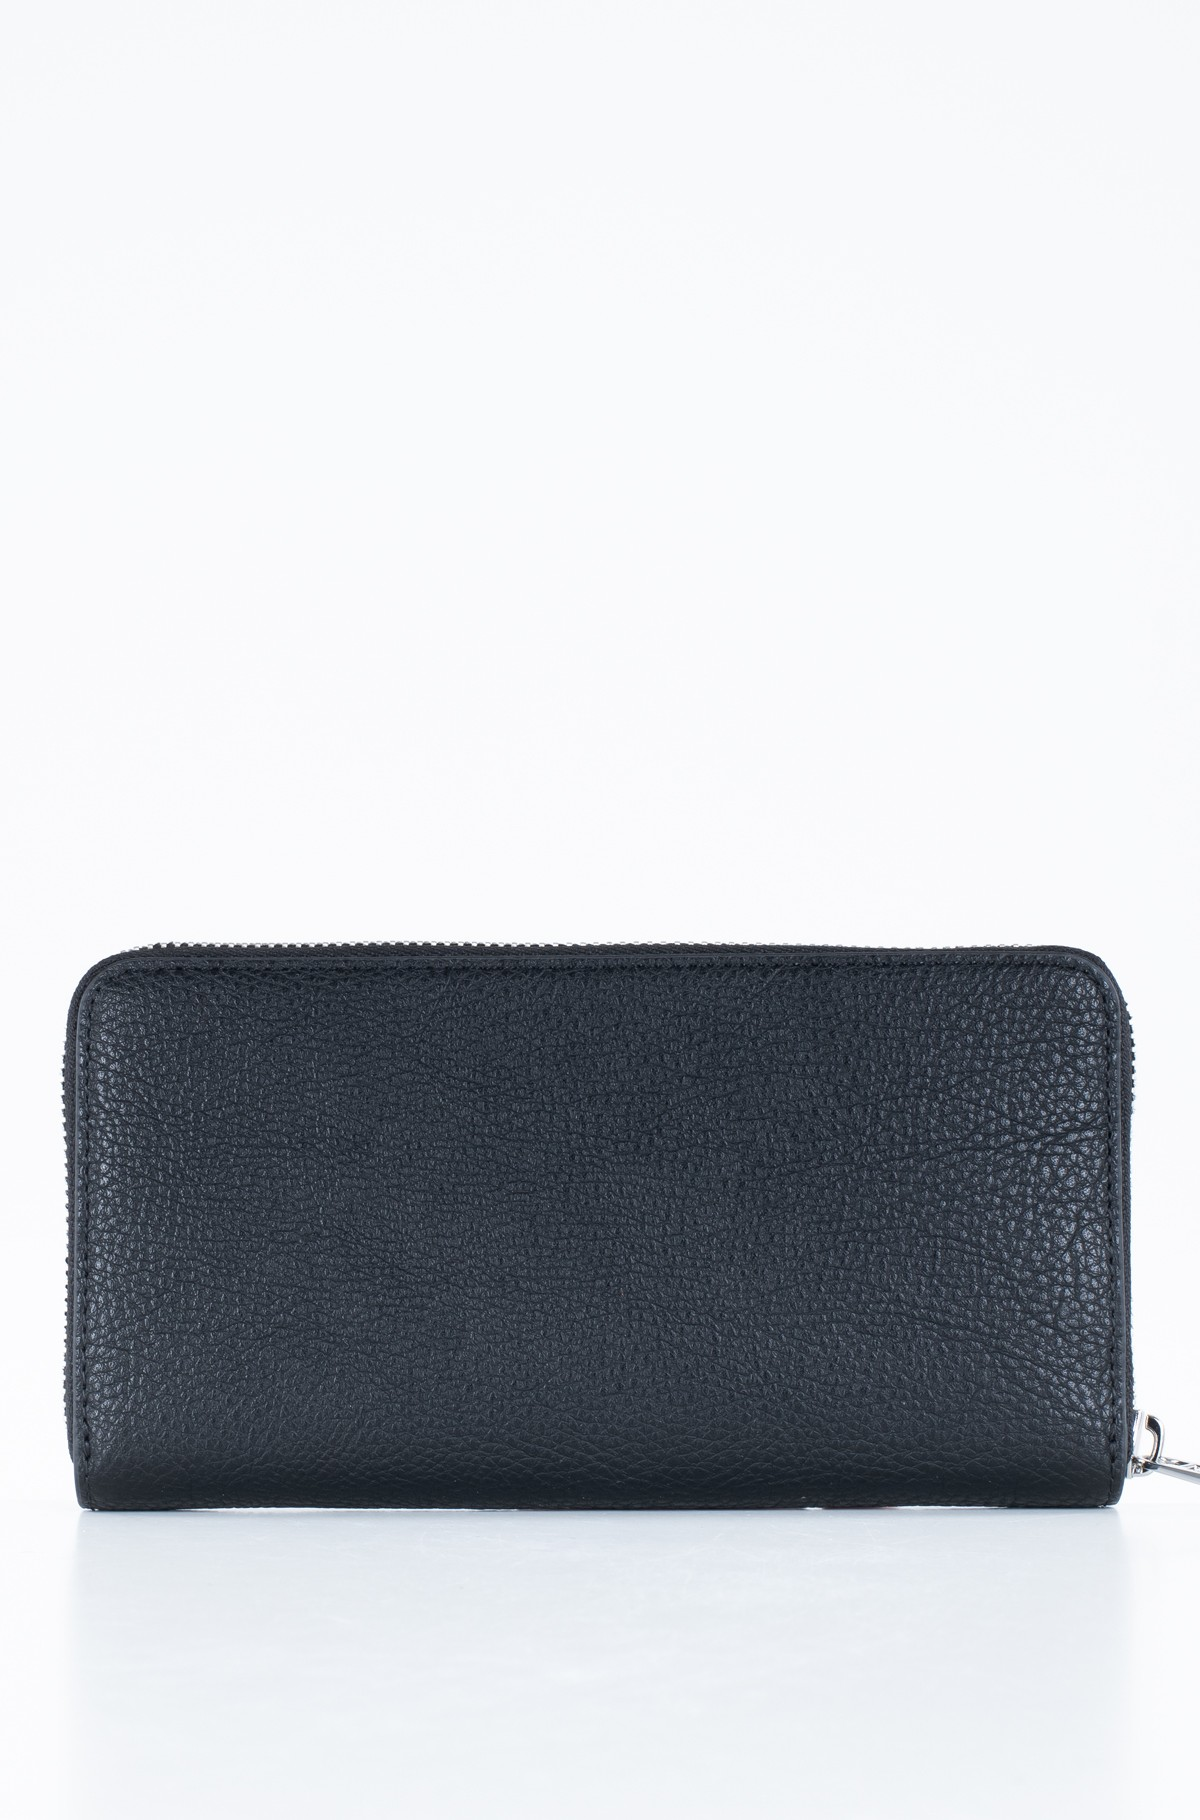 Wallet TH CORE LRG ZA WALLET-full-2